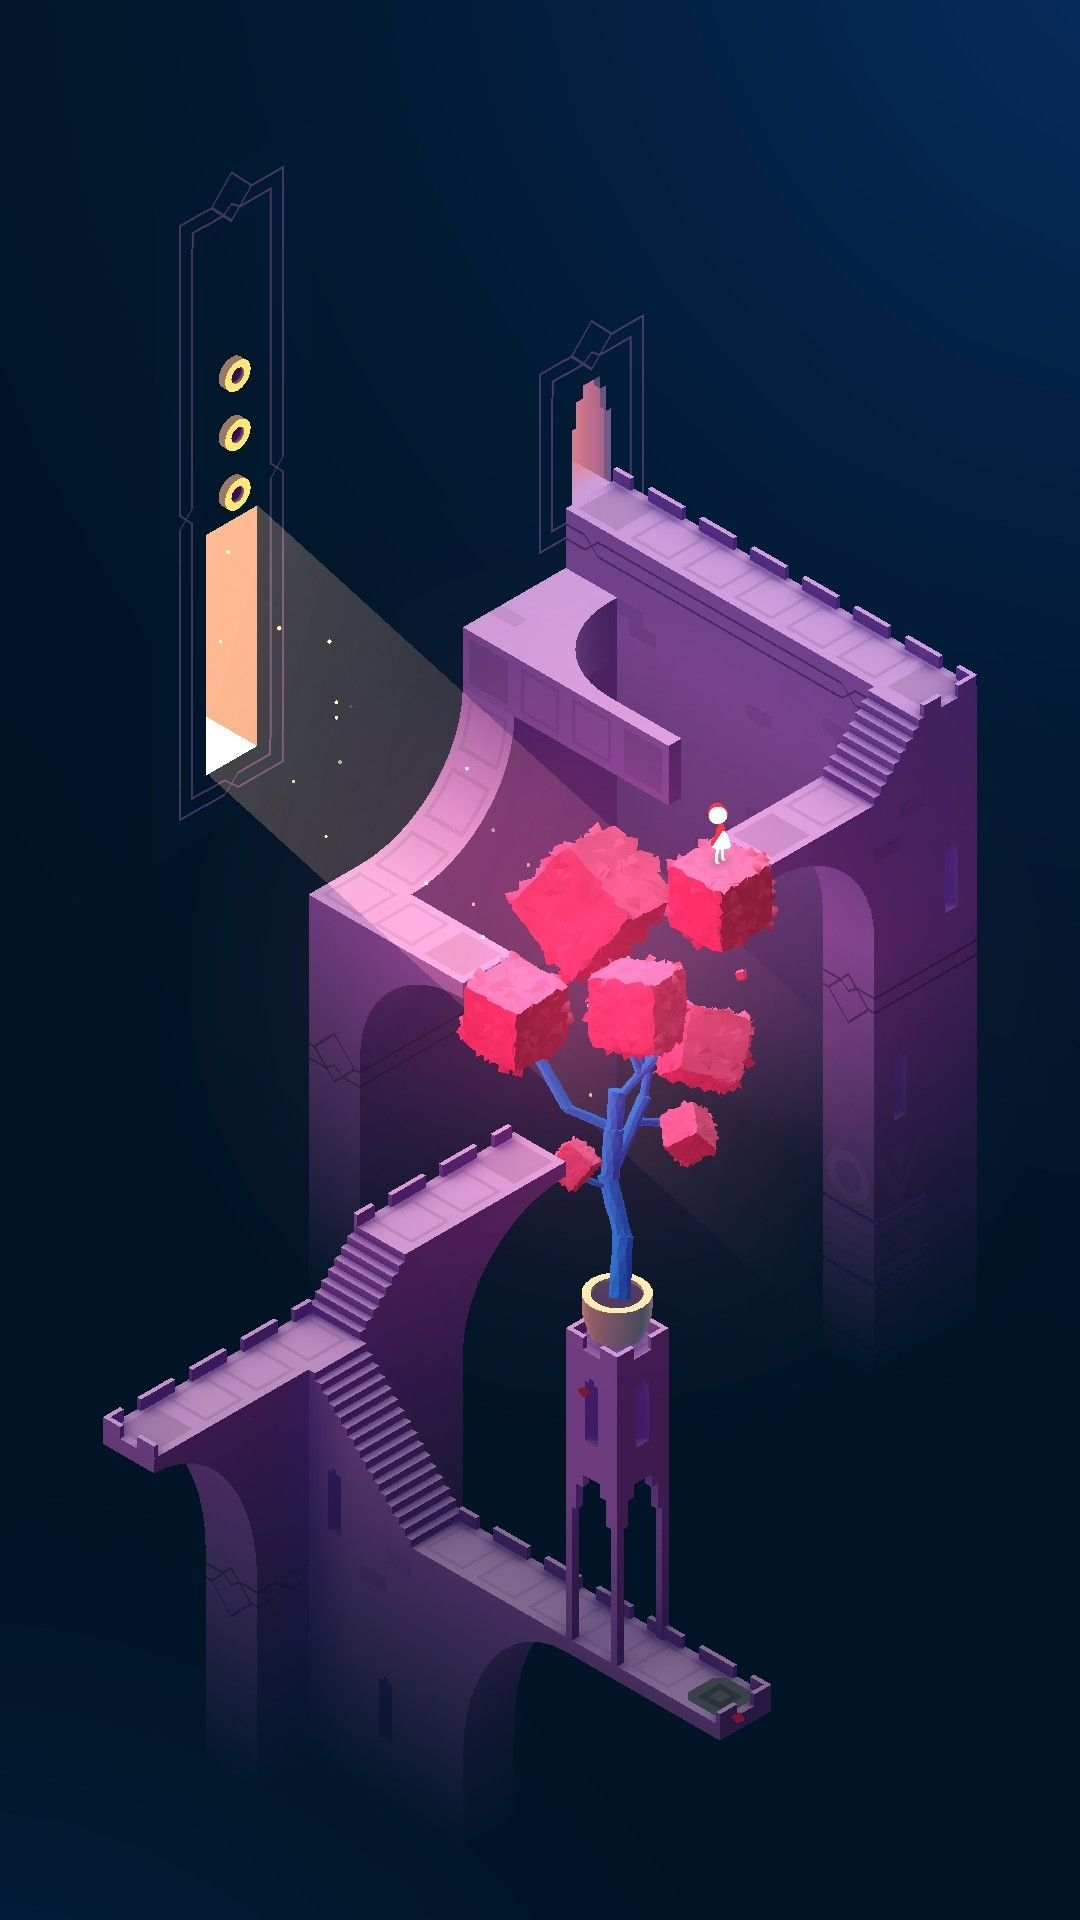 Wallpaper For Monument Valley 2 Game In 2020 Monument Valley 2 Monument Valley Game Monument Valley